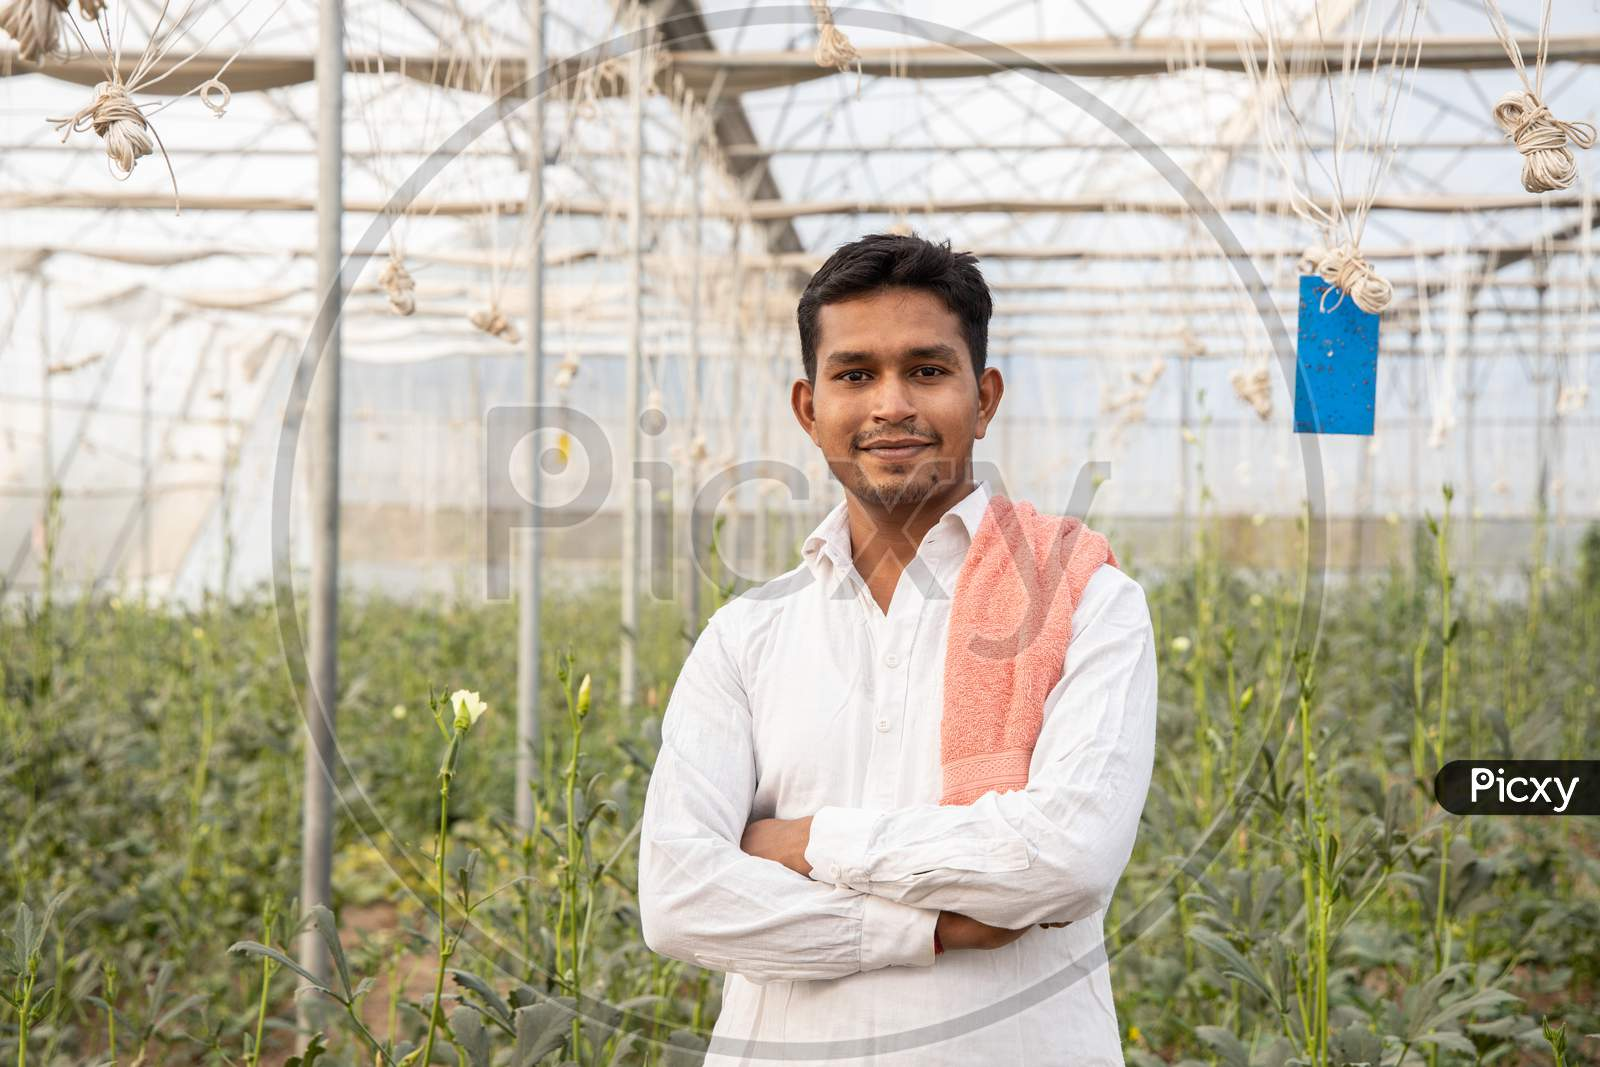 Portrait Of Young Happy Indian Farmer Standing Cross Arms At His Poly House Or Greenhouse, Agriculture Business And Rural Prosperity Concept. Man Wearing White Cloths, Copy Space